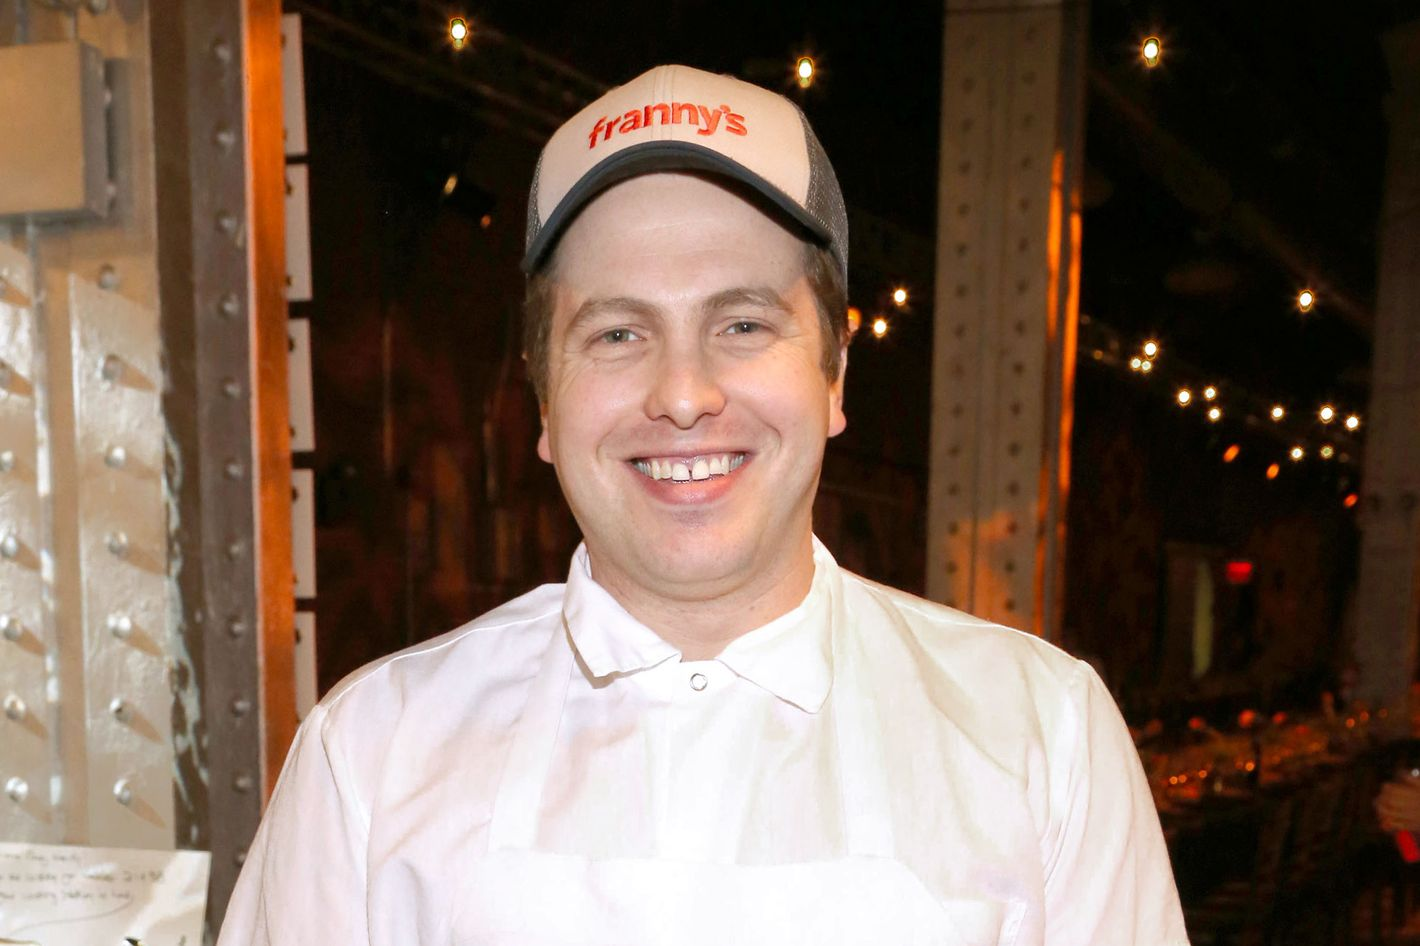 Johnathan Adler has been at Franny's since 2008.